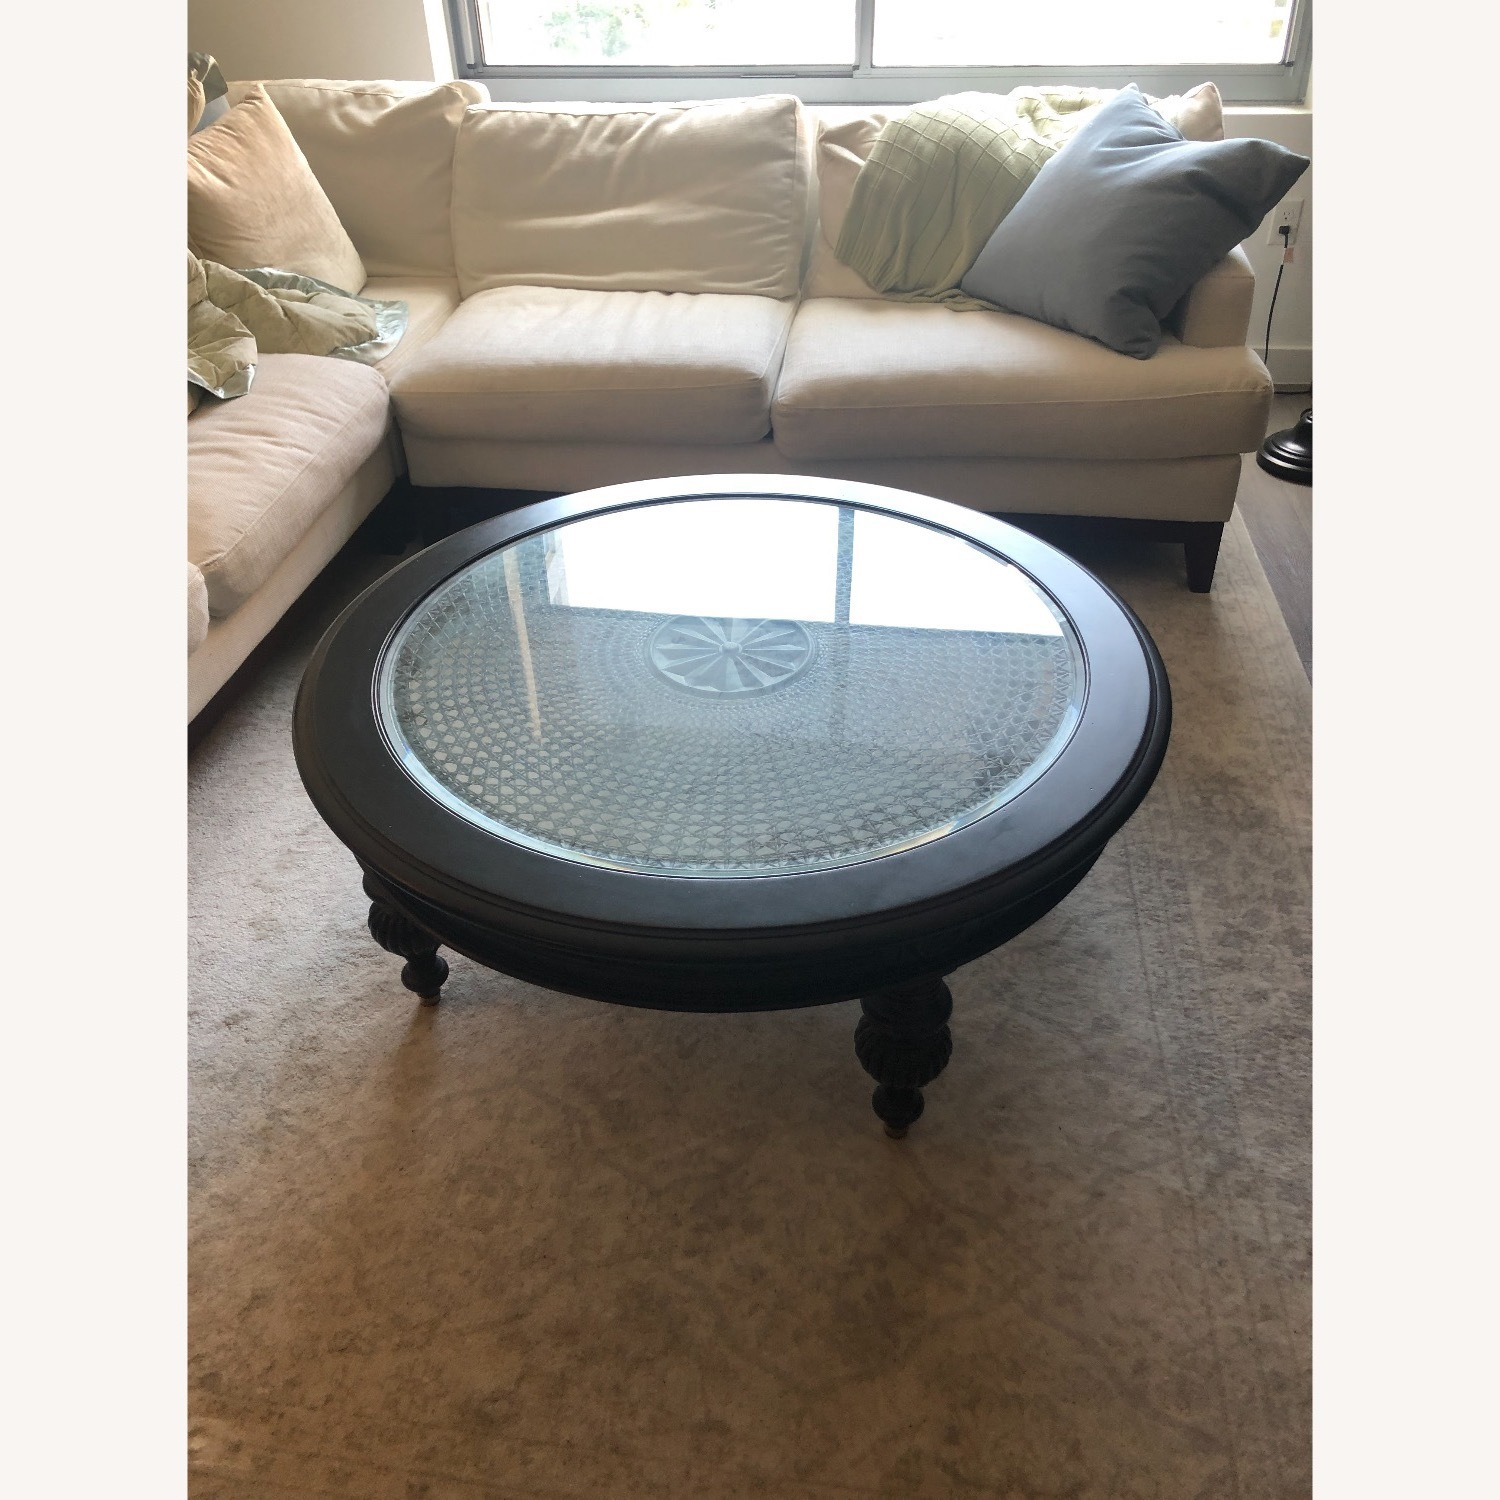 Ethan Allen Maya Round Coffee Table in Peppercorn - image-4